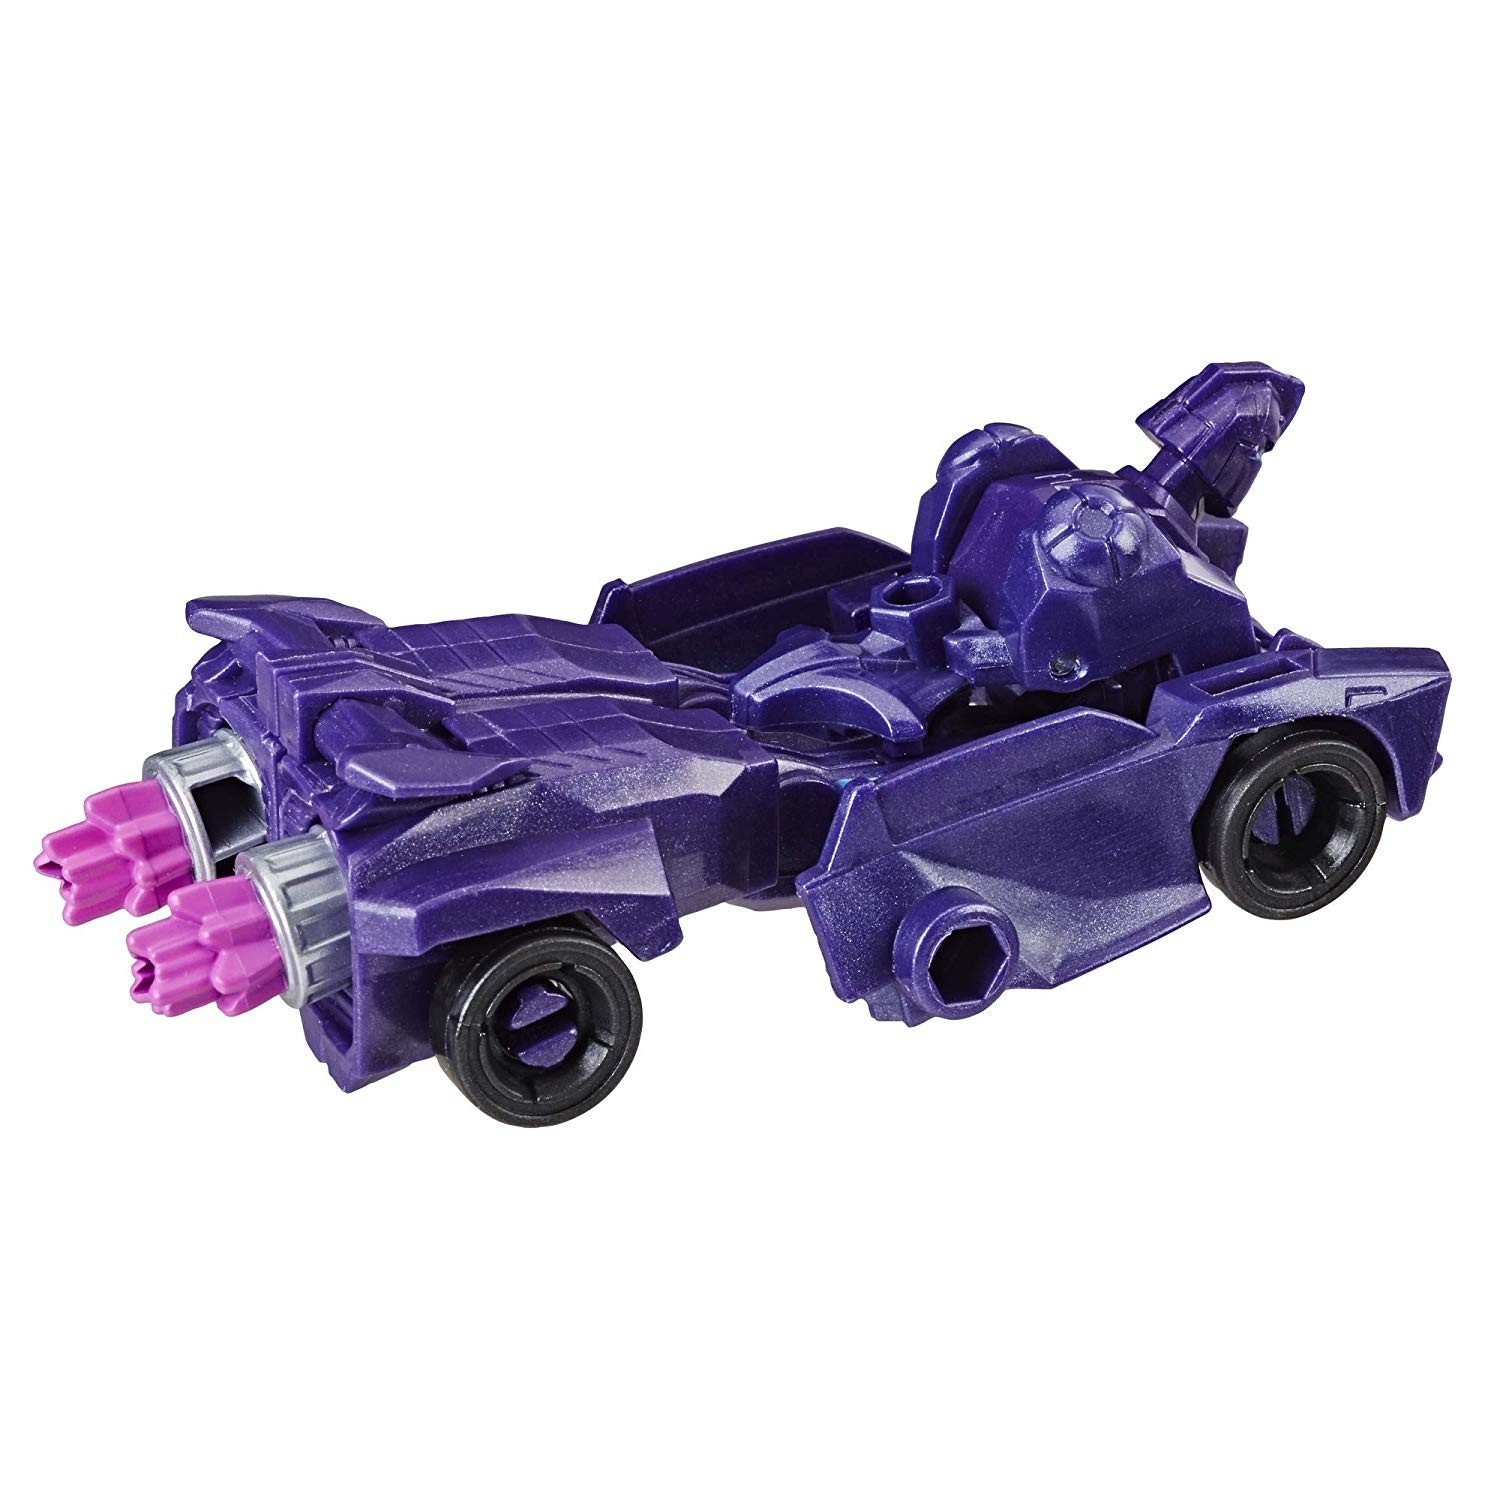 Transformers News: New Cyberverse Scout class stock photos found on Amazon Australia